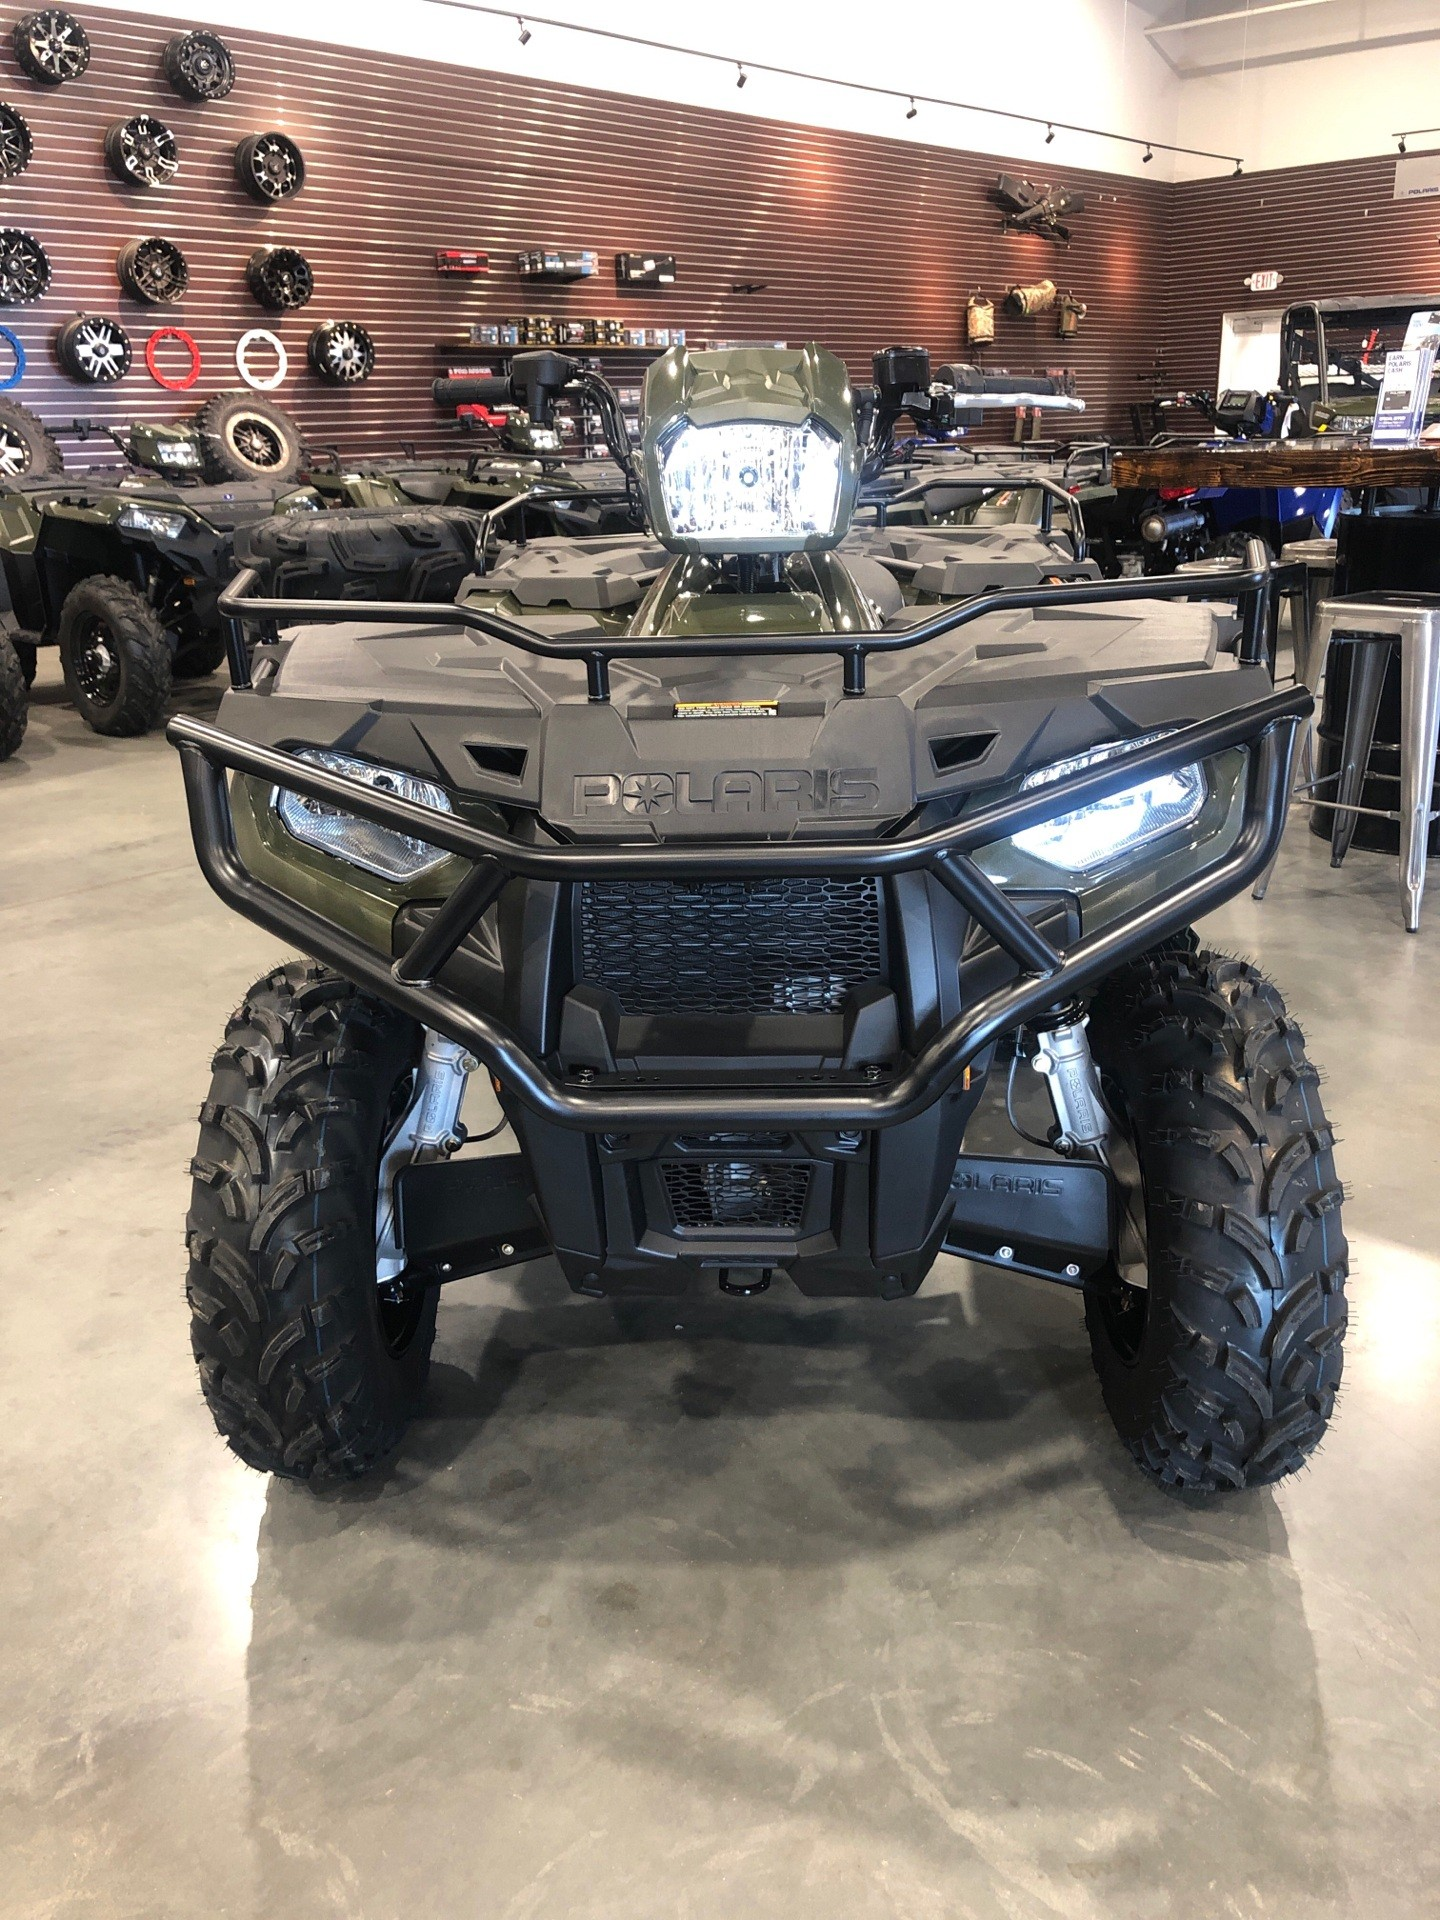 2020 Polaris Sportsman 450 H.O. in Conway, Arkansas - Photo 2